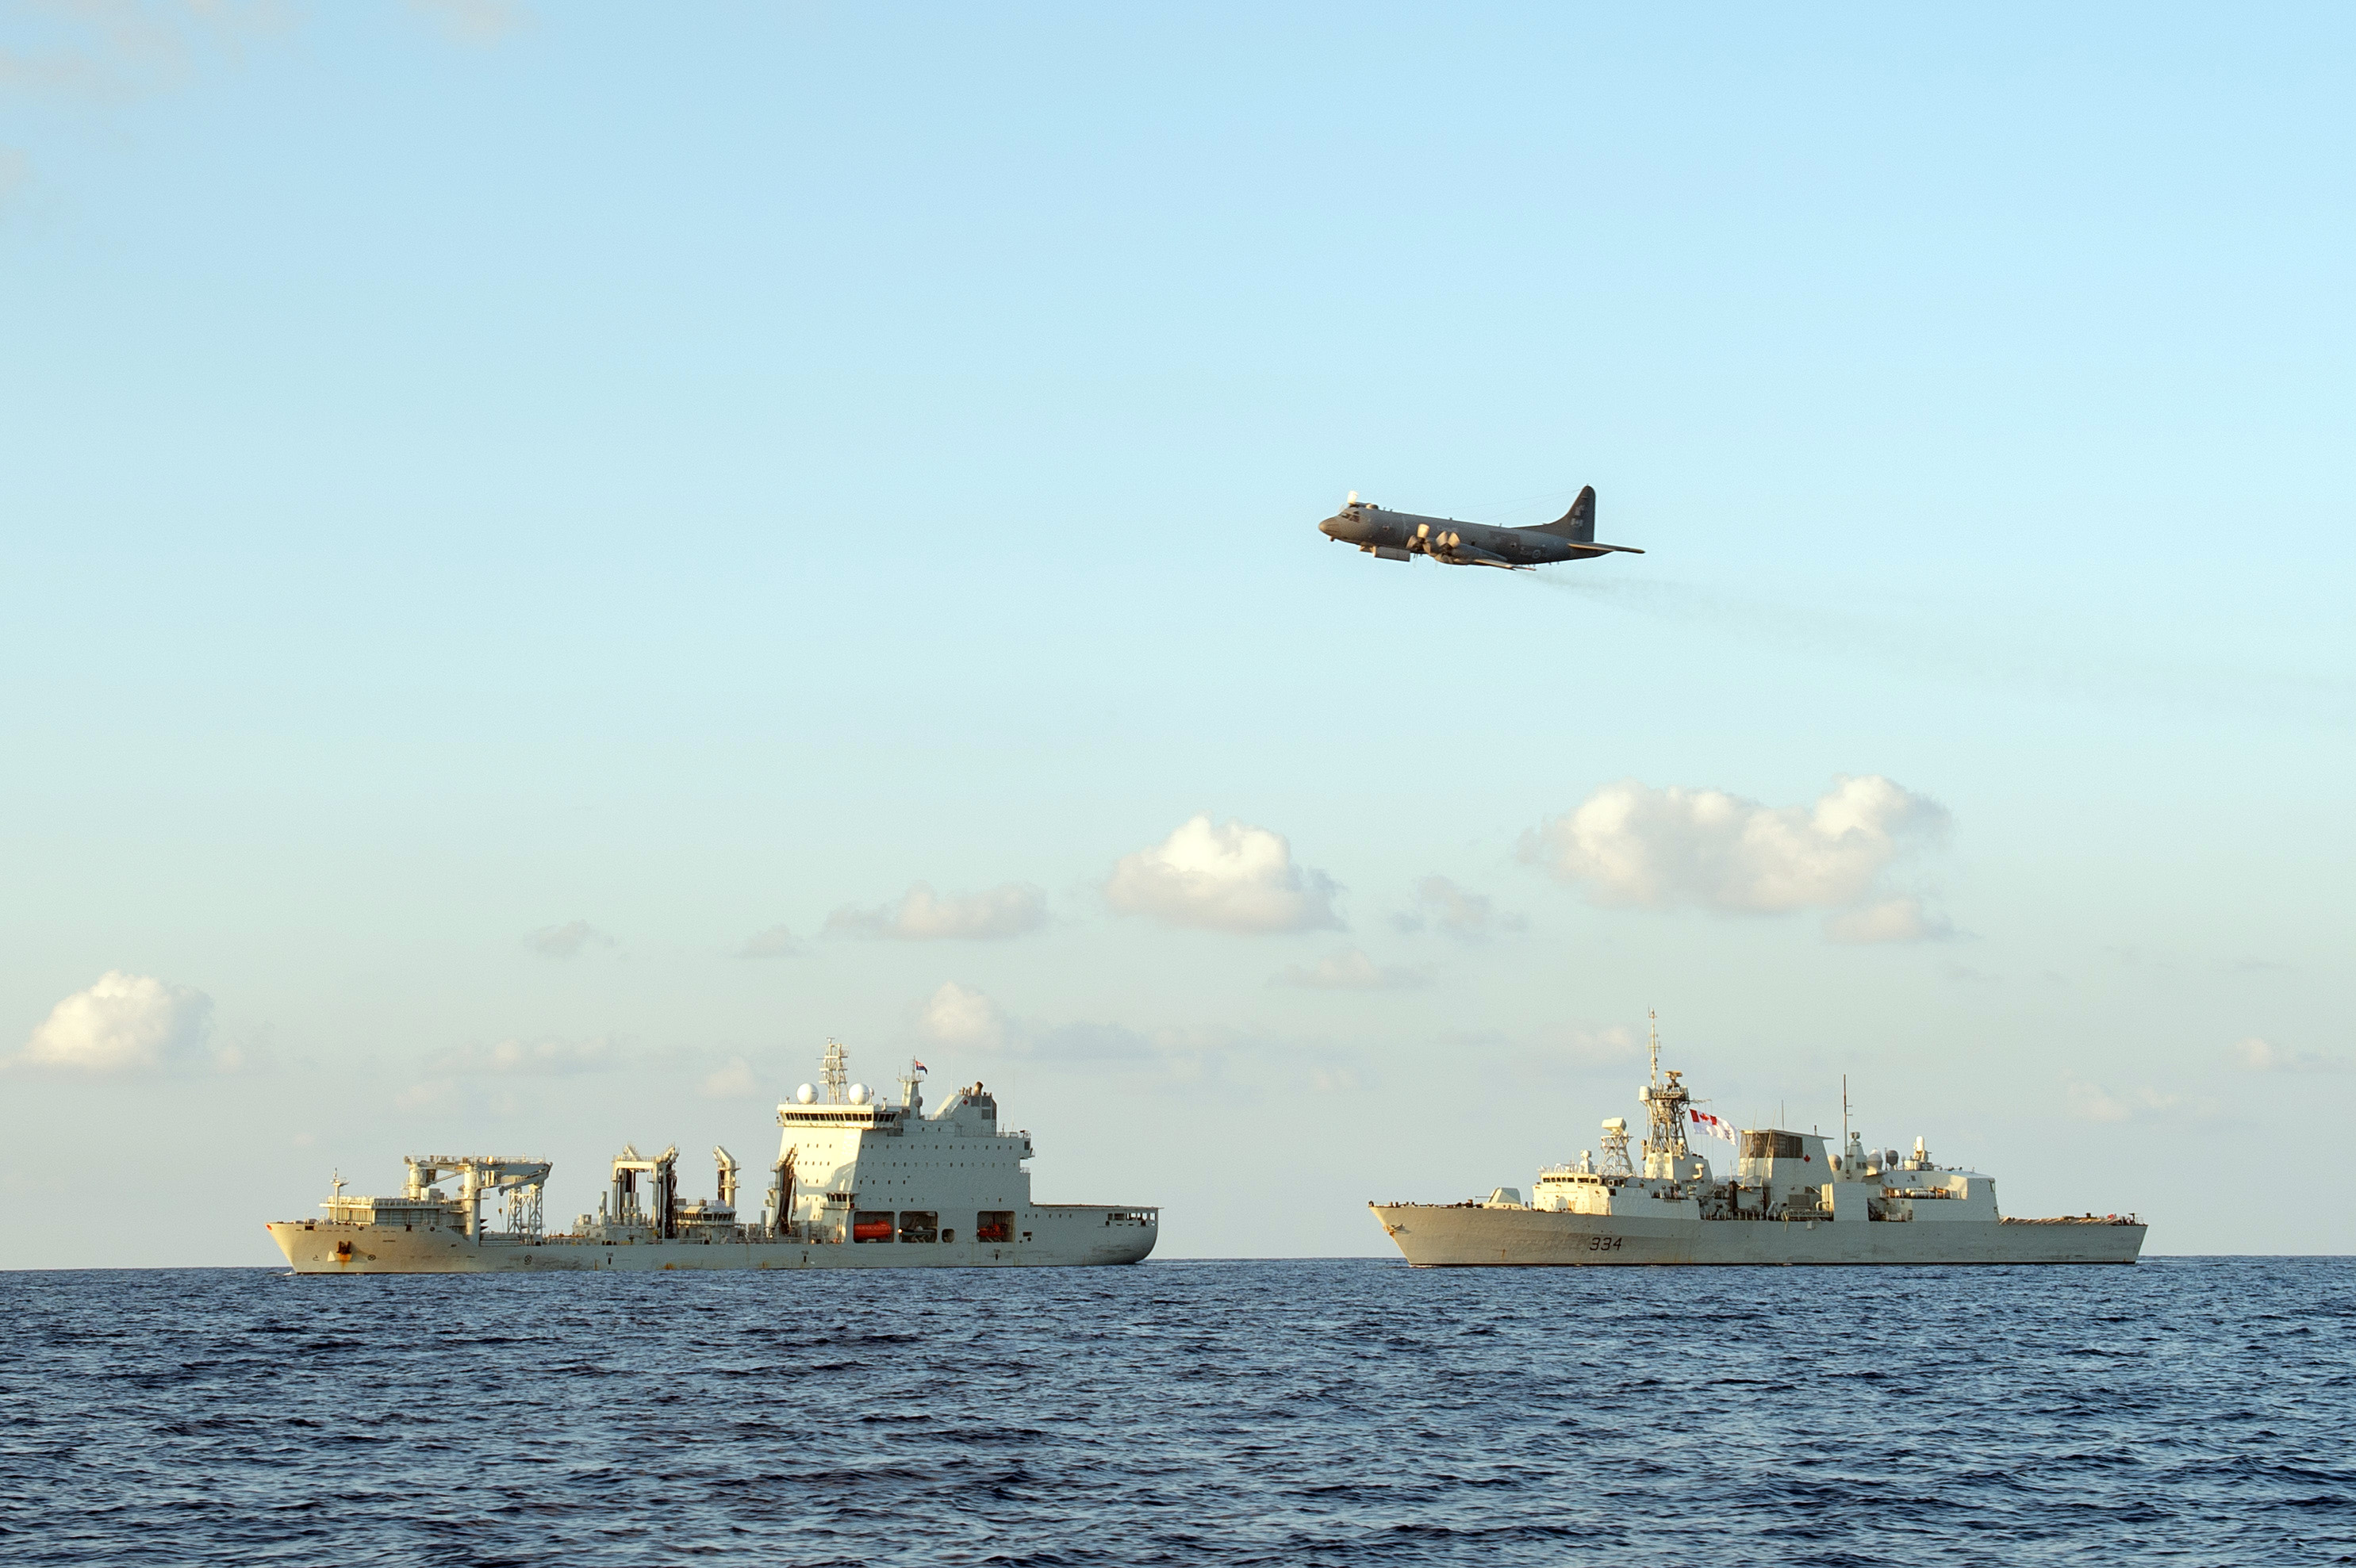 A large aircraft flies over two large ships in the open ocean.